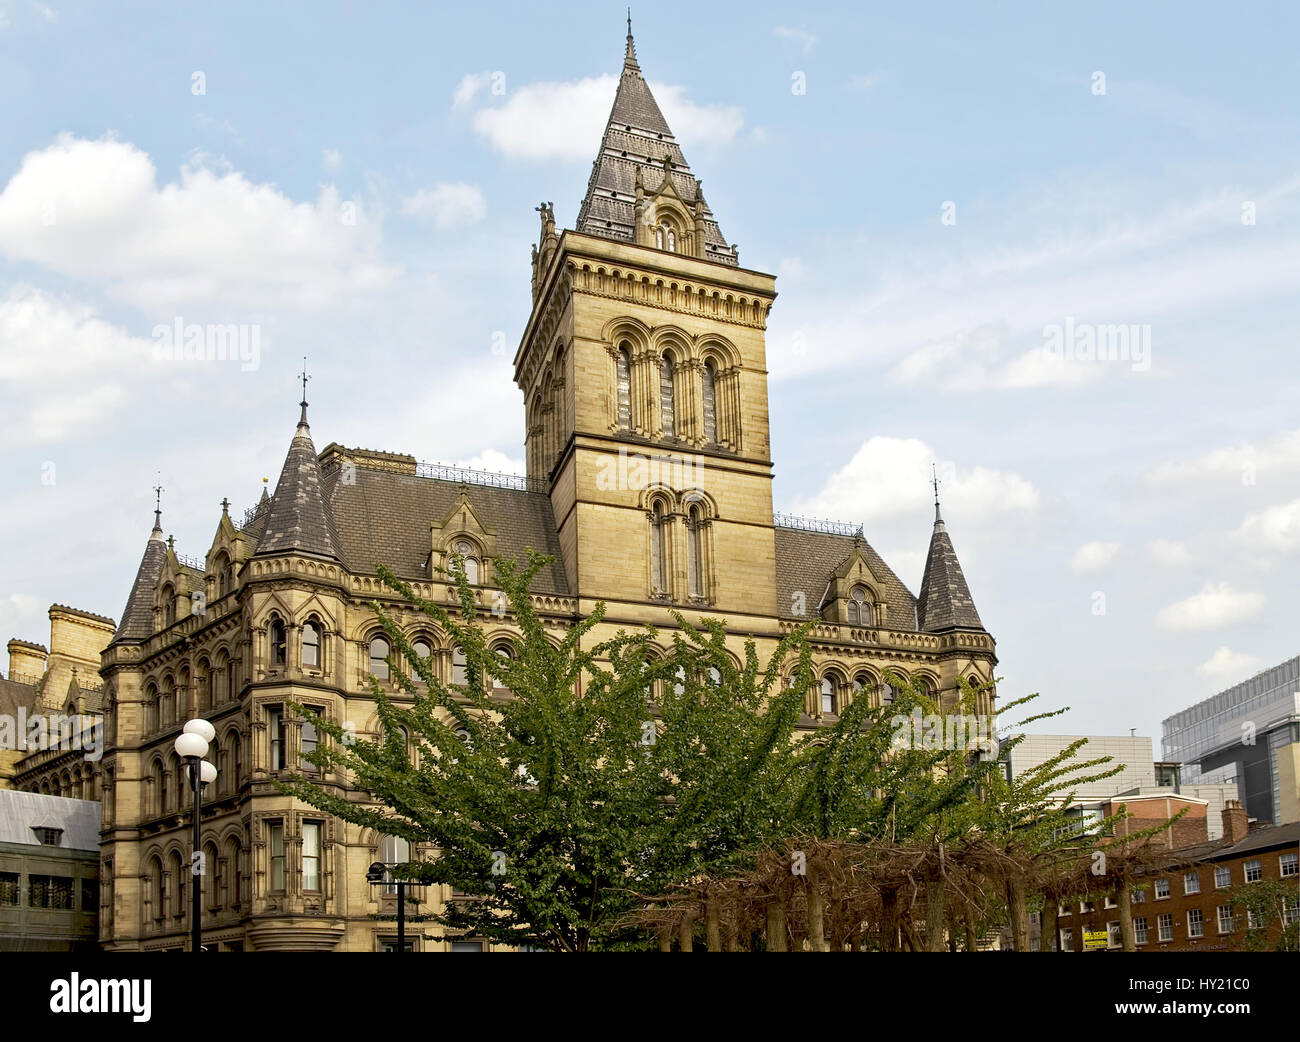 Manchester Town Hall is a building in Manchester, England that houses Manchester City Council. Completed by architect - Stock Image